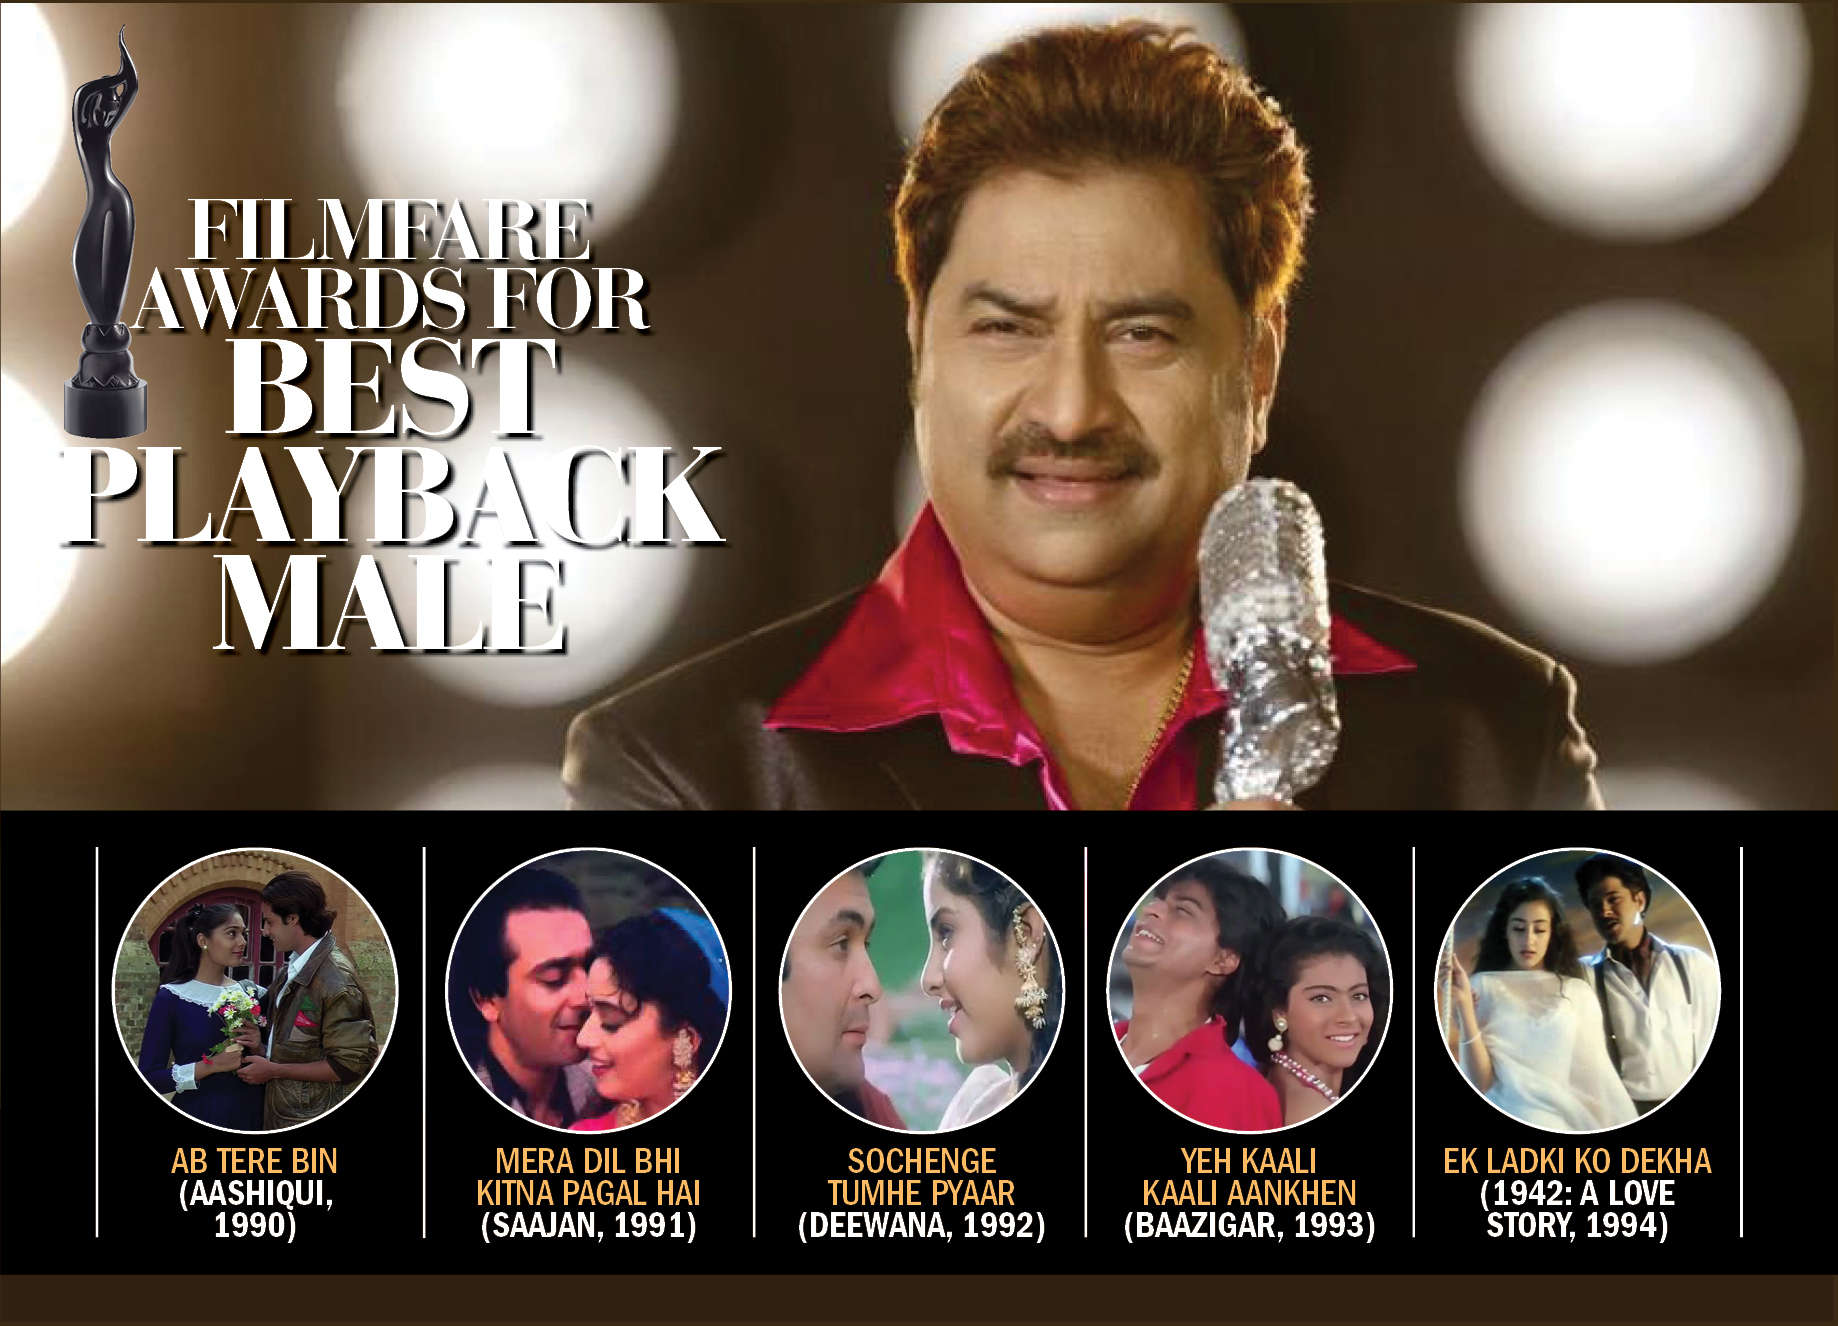 '90s rockstar Kumar Sanu opens up about his musical journey over the years